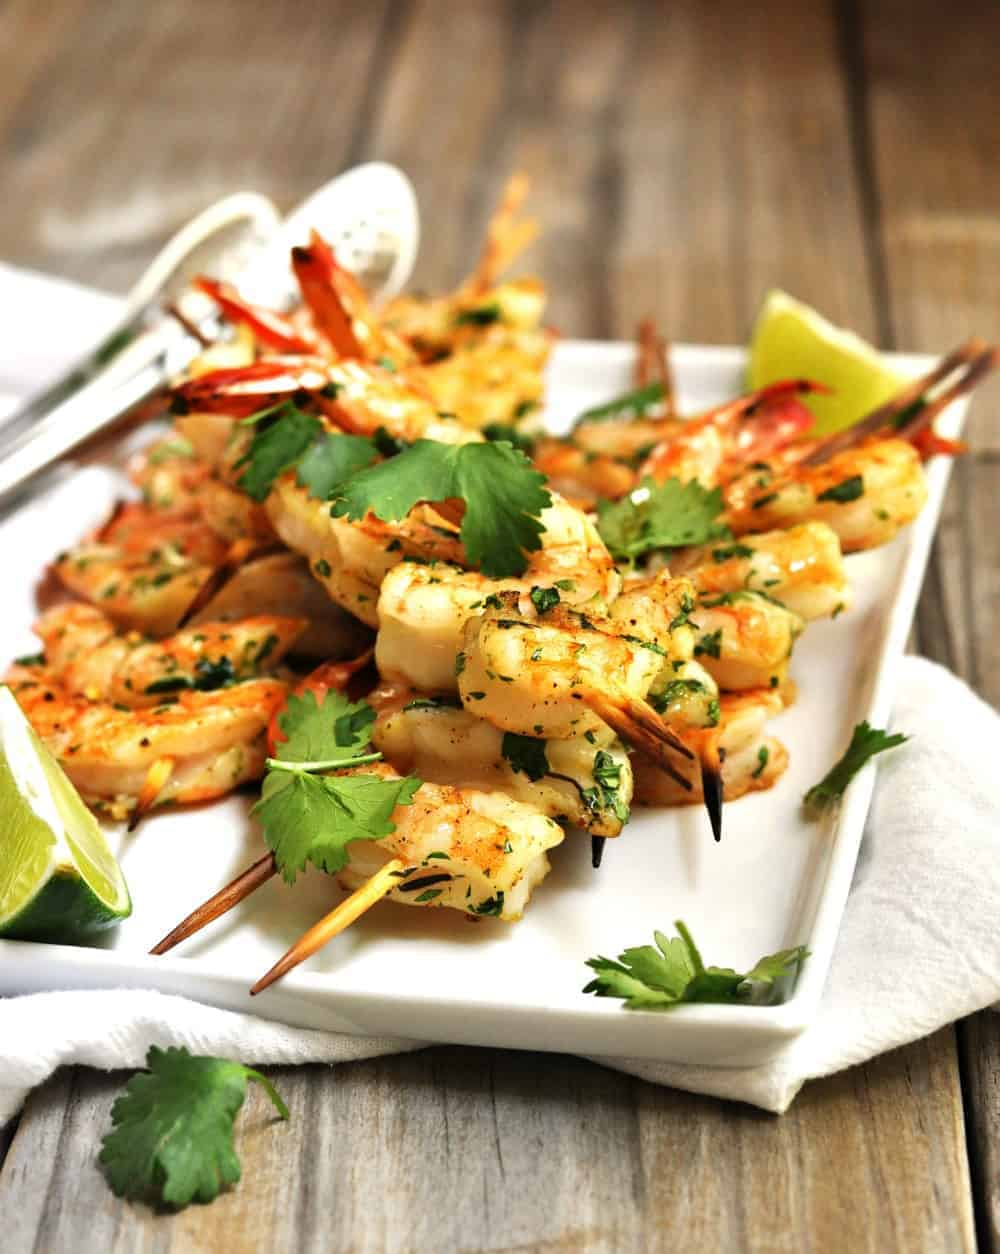 Grilled Shrimp skewers served on a white platter